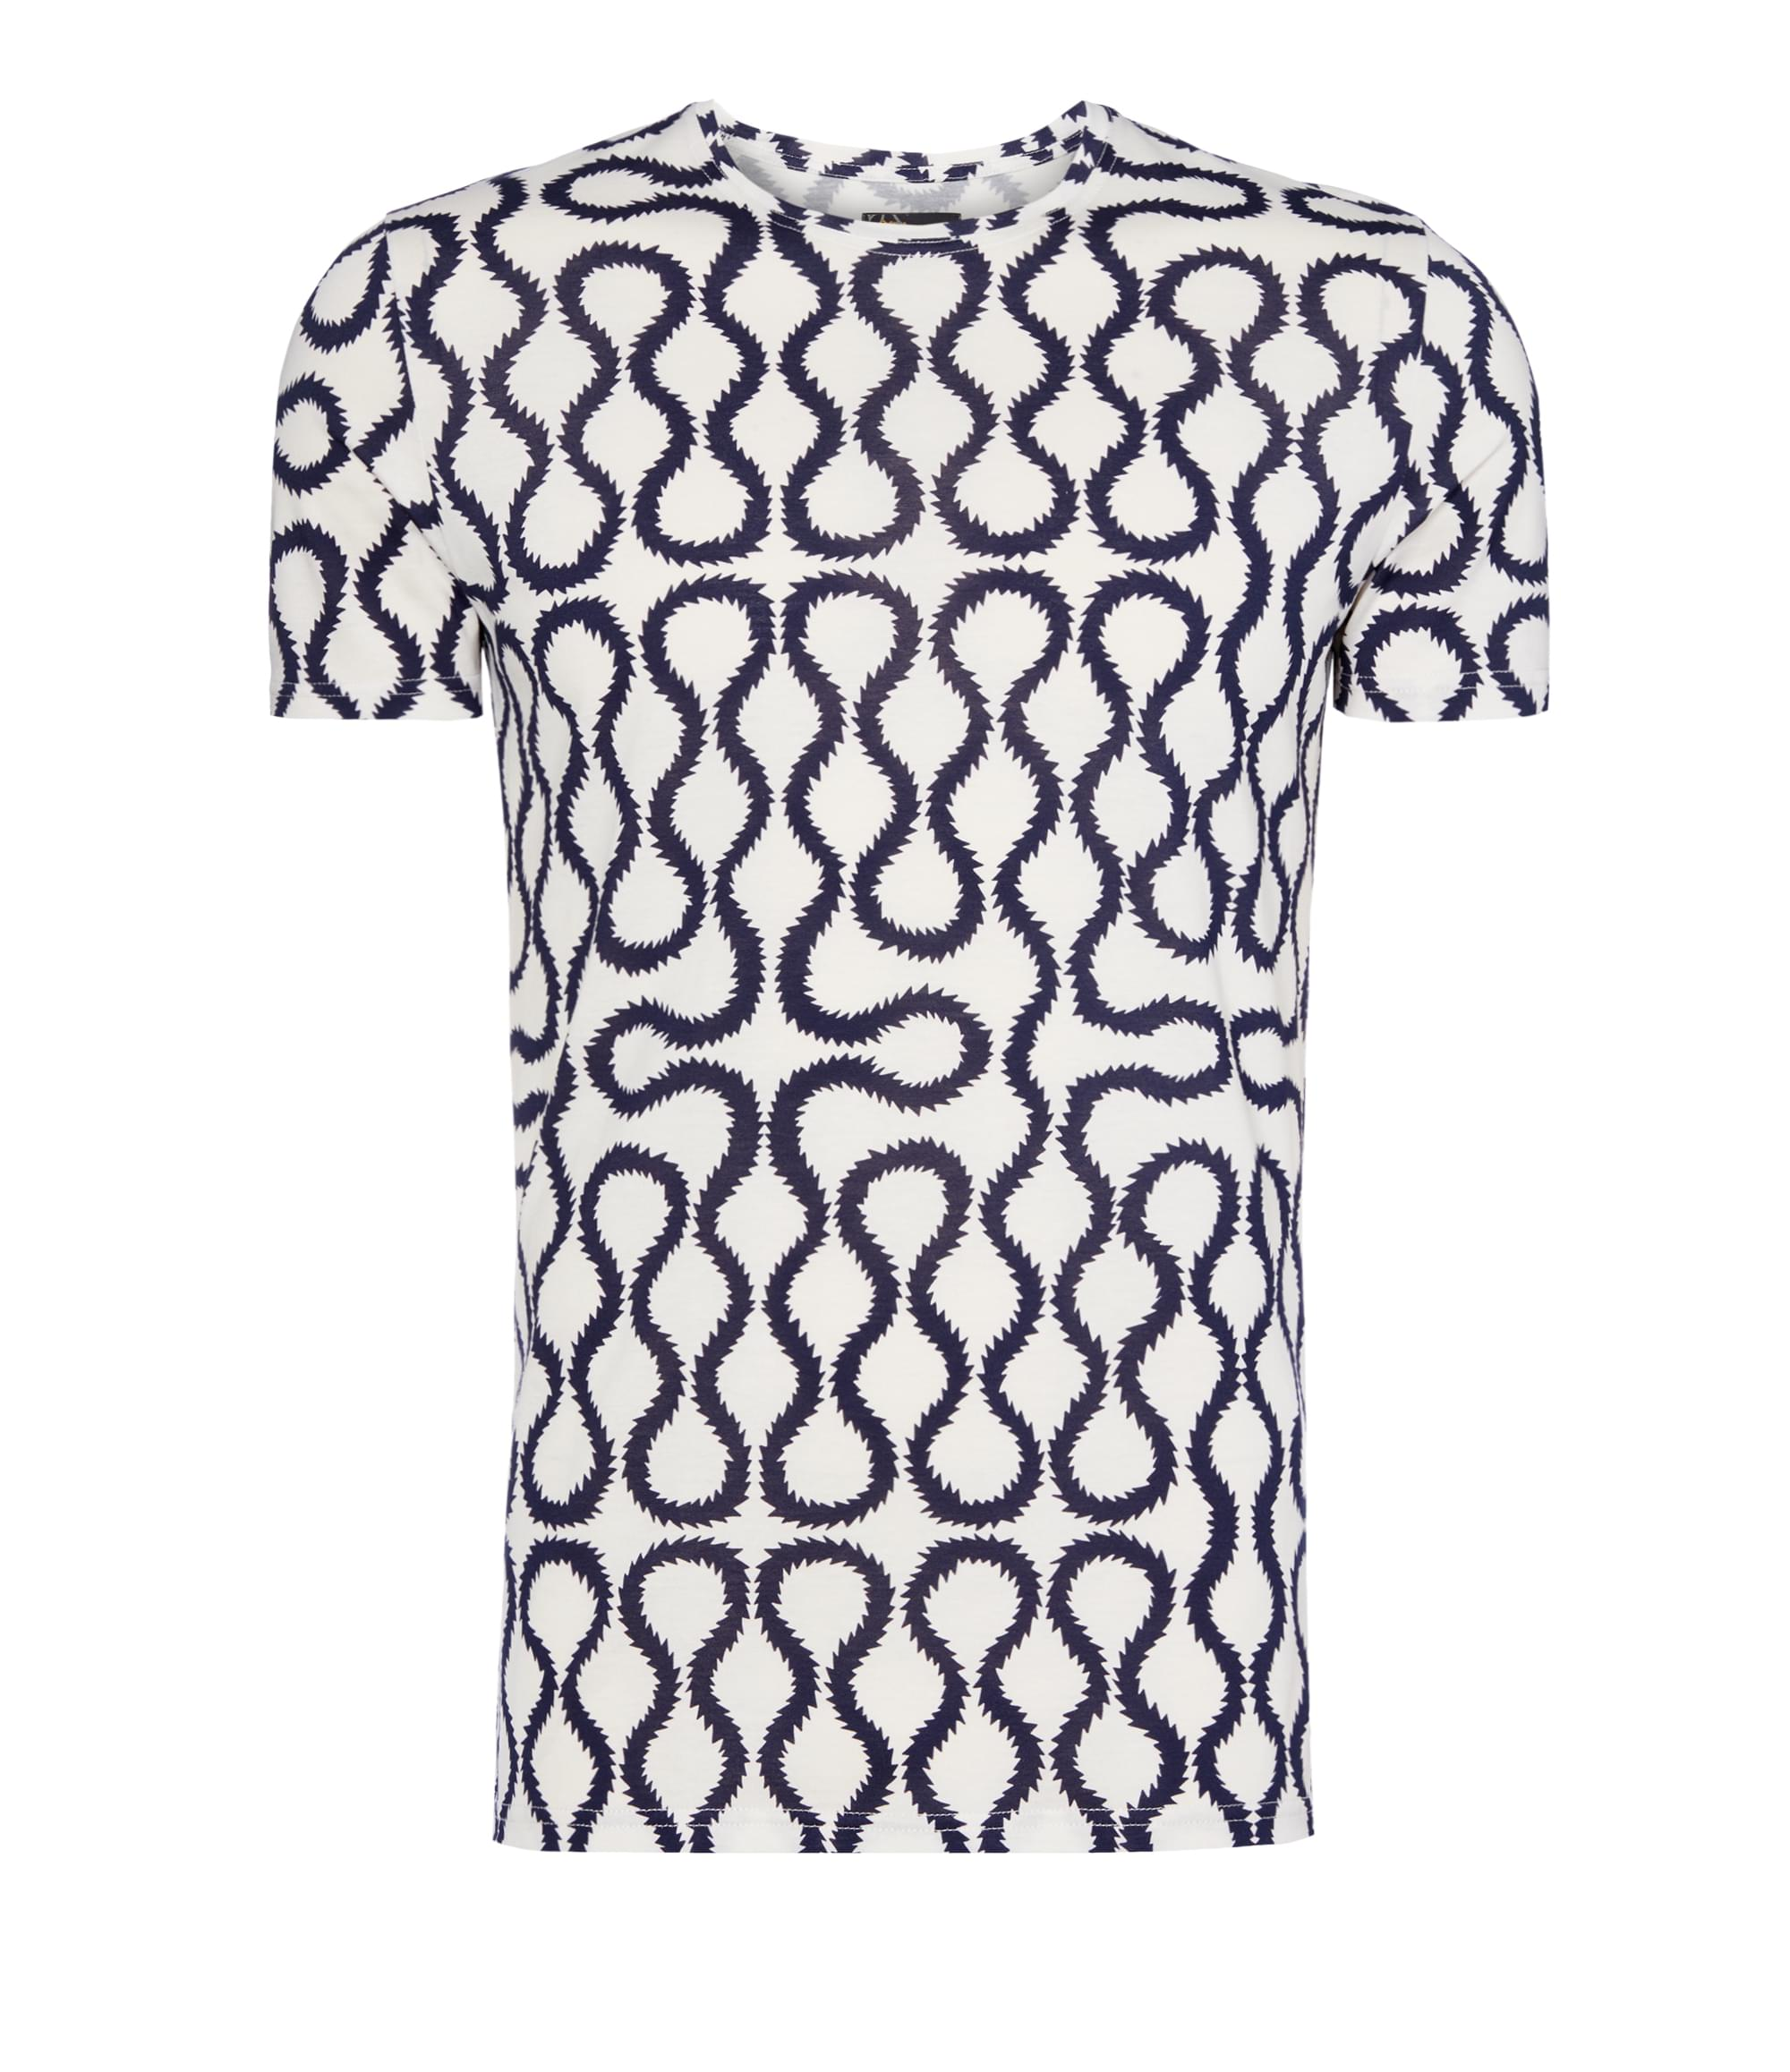 Vivienne Westwood Navy\/White Squiggle T-Shirt